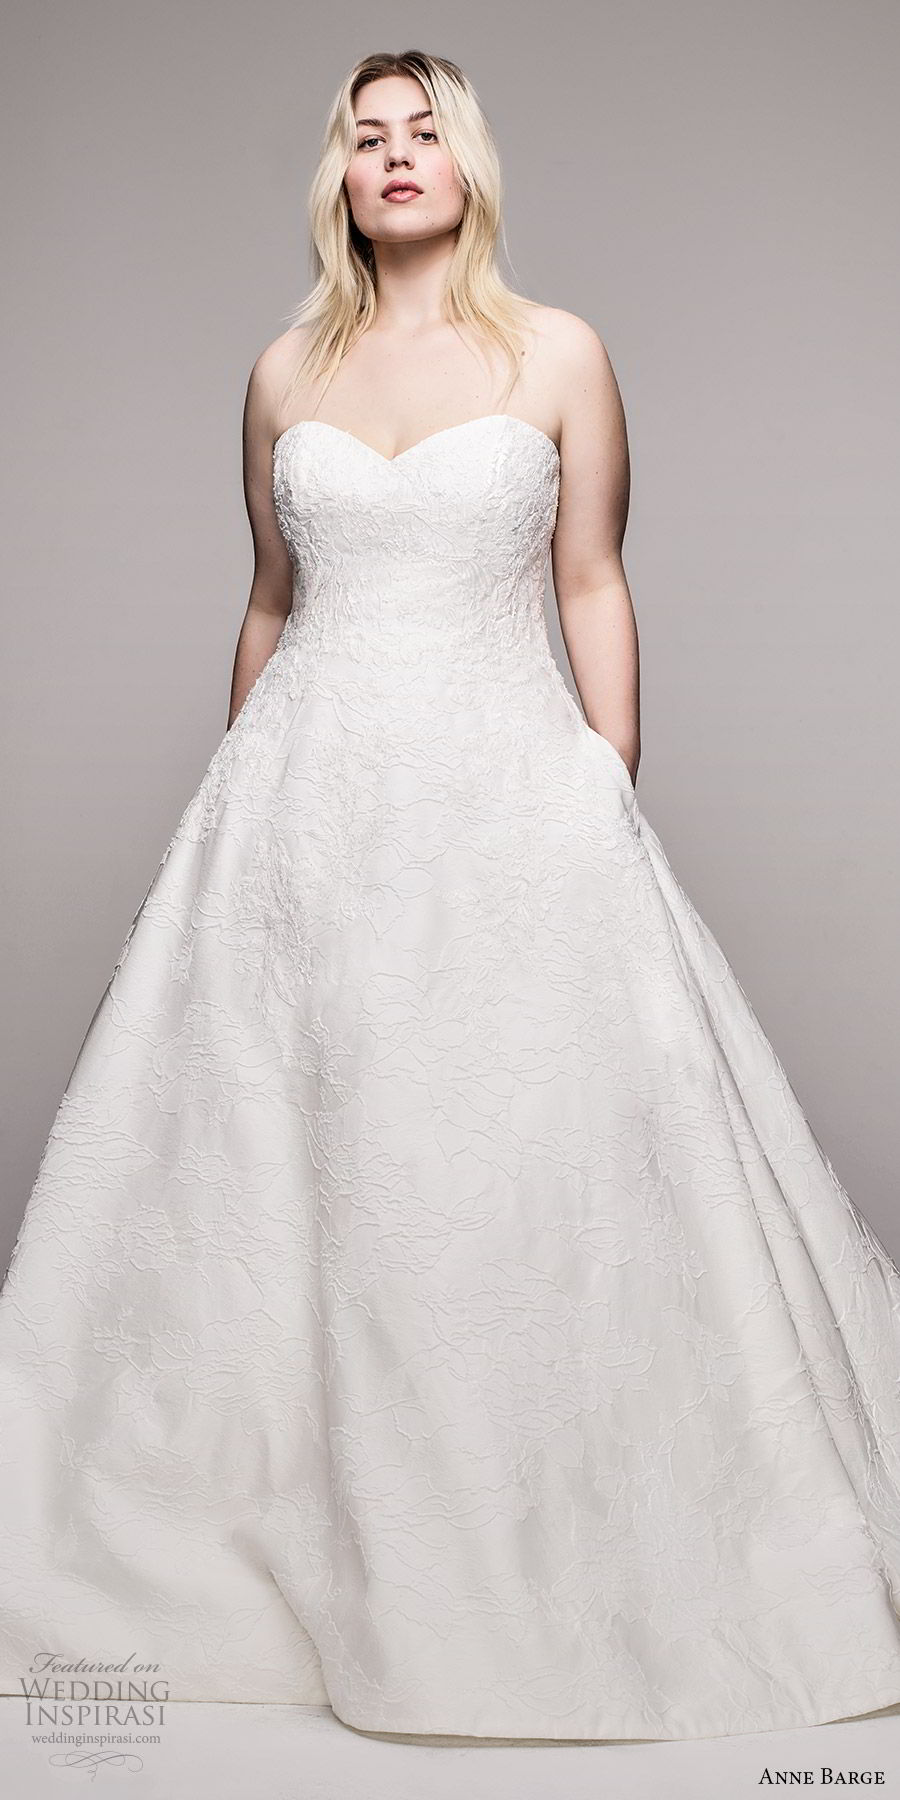 anne barge 2020 bridal plus size strapless sweetheart fully embellished a line ball gown wedding dress (3) romantic princess chapel train mv